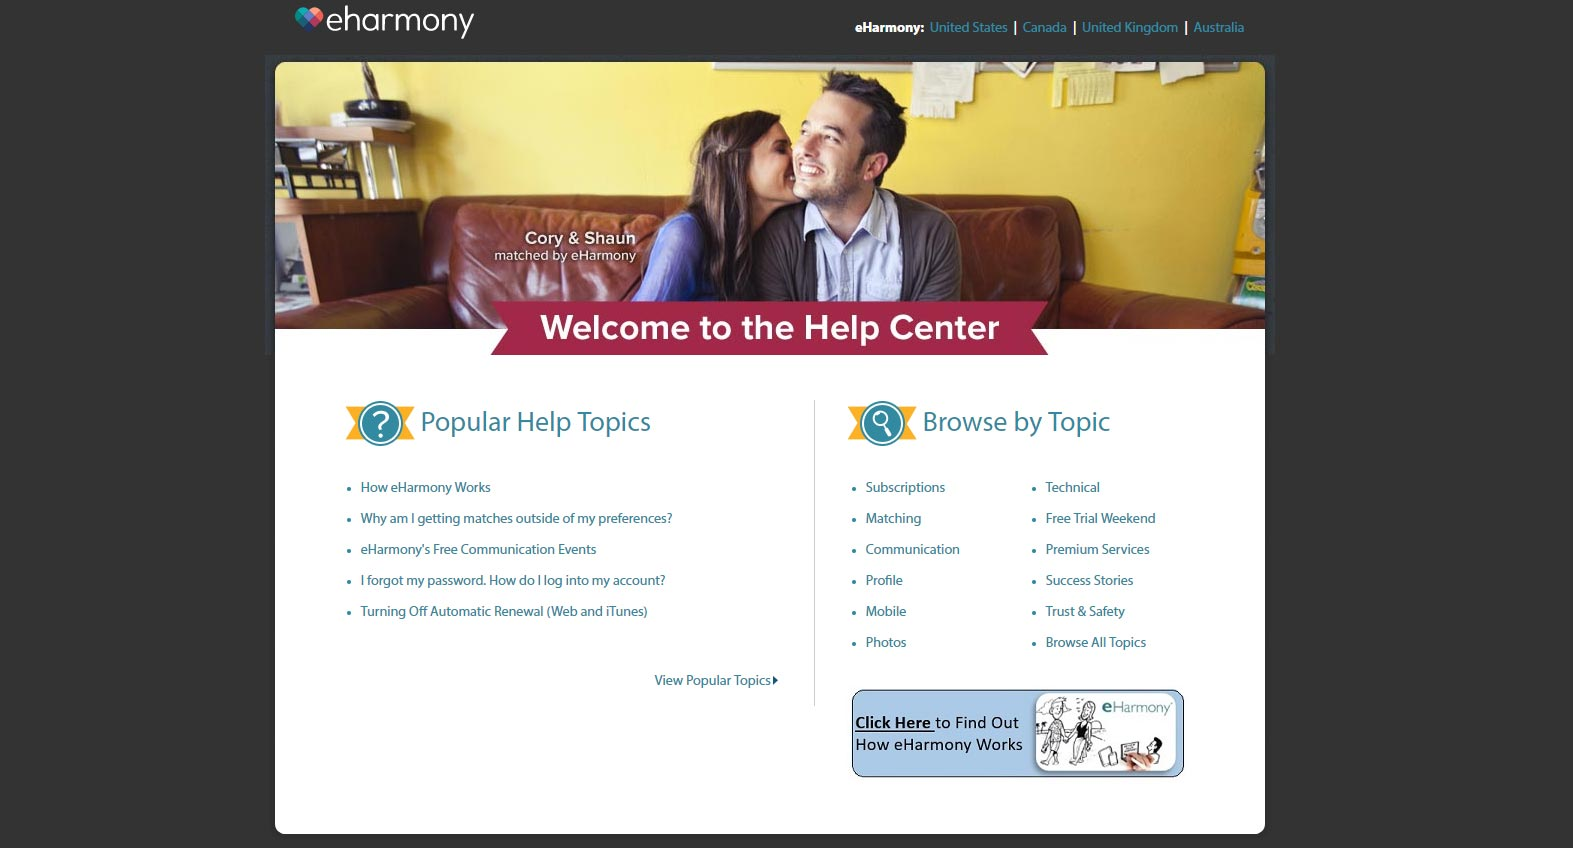 eHarmony help page image for international dating site review